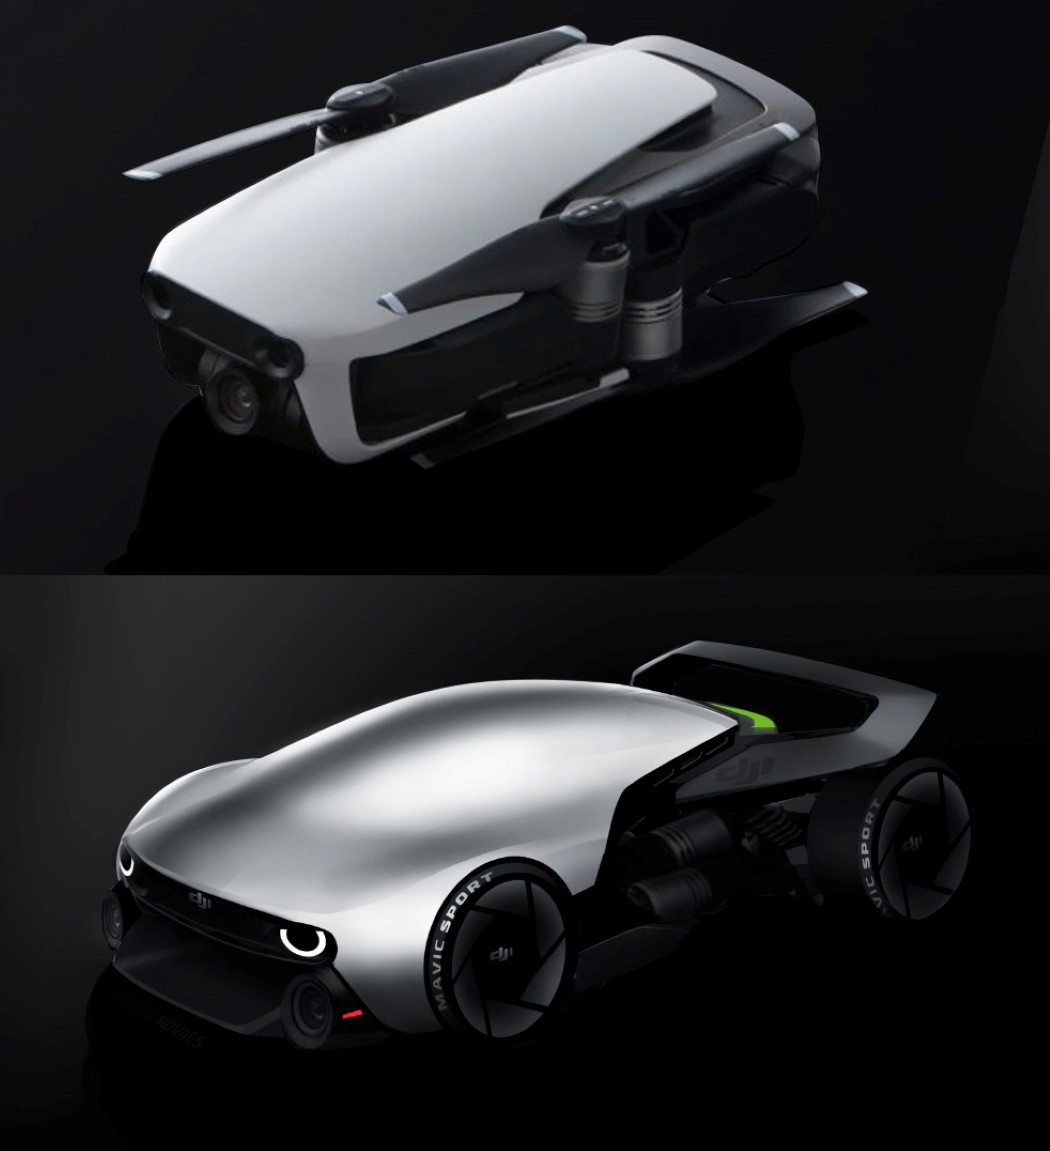 dji_mavic_car_4